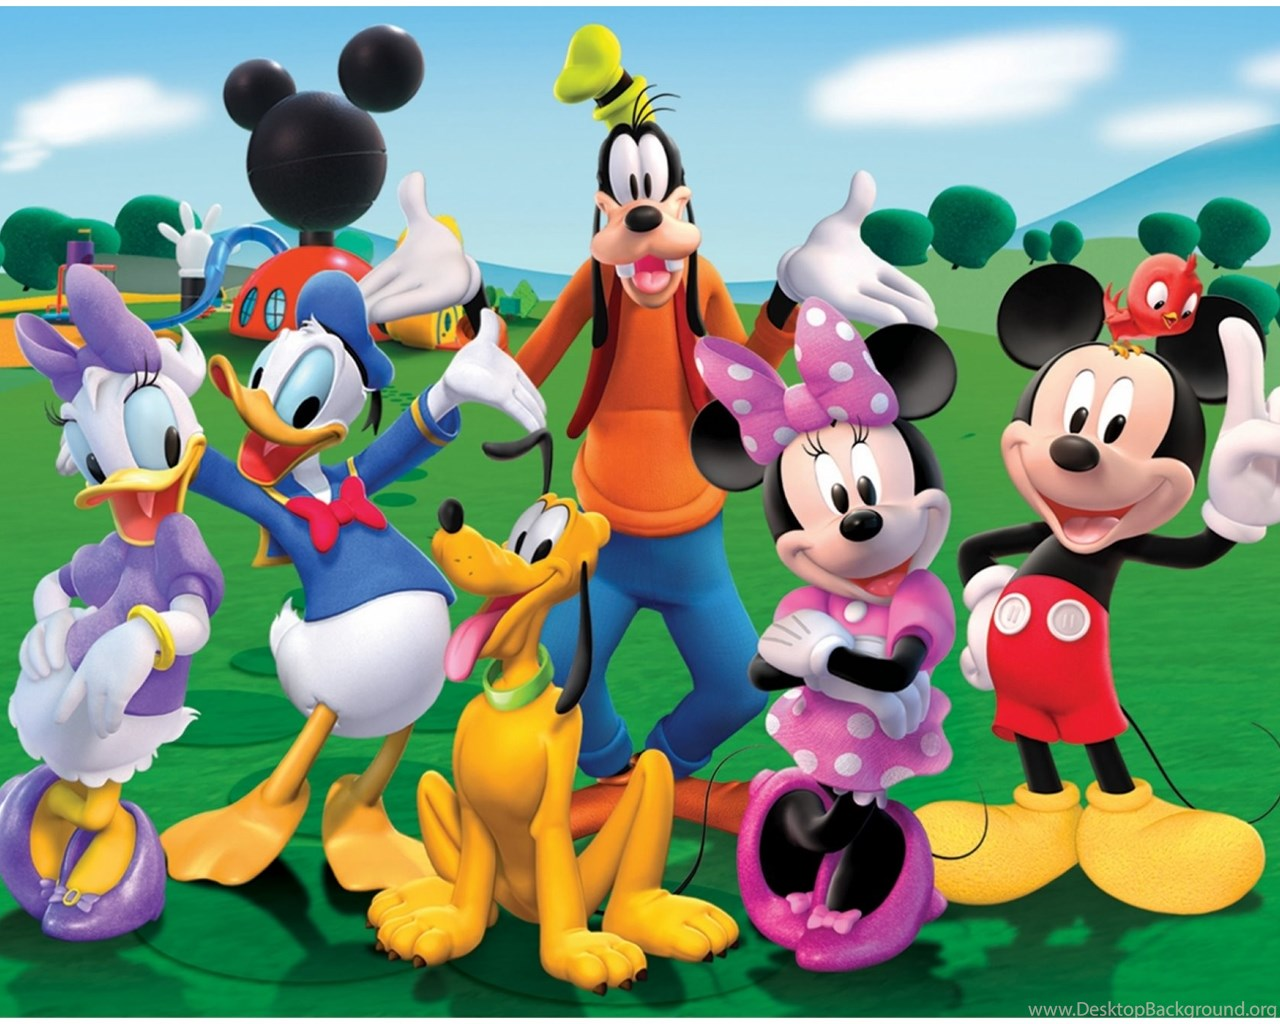 Mickey mouse cartoons hd wallpapers download desktop - Mickey mouse hd wallpaper 1366x768 ...